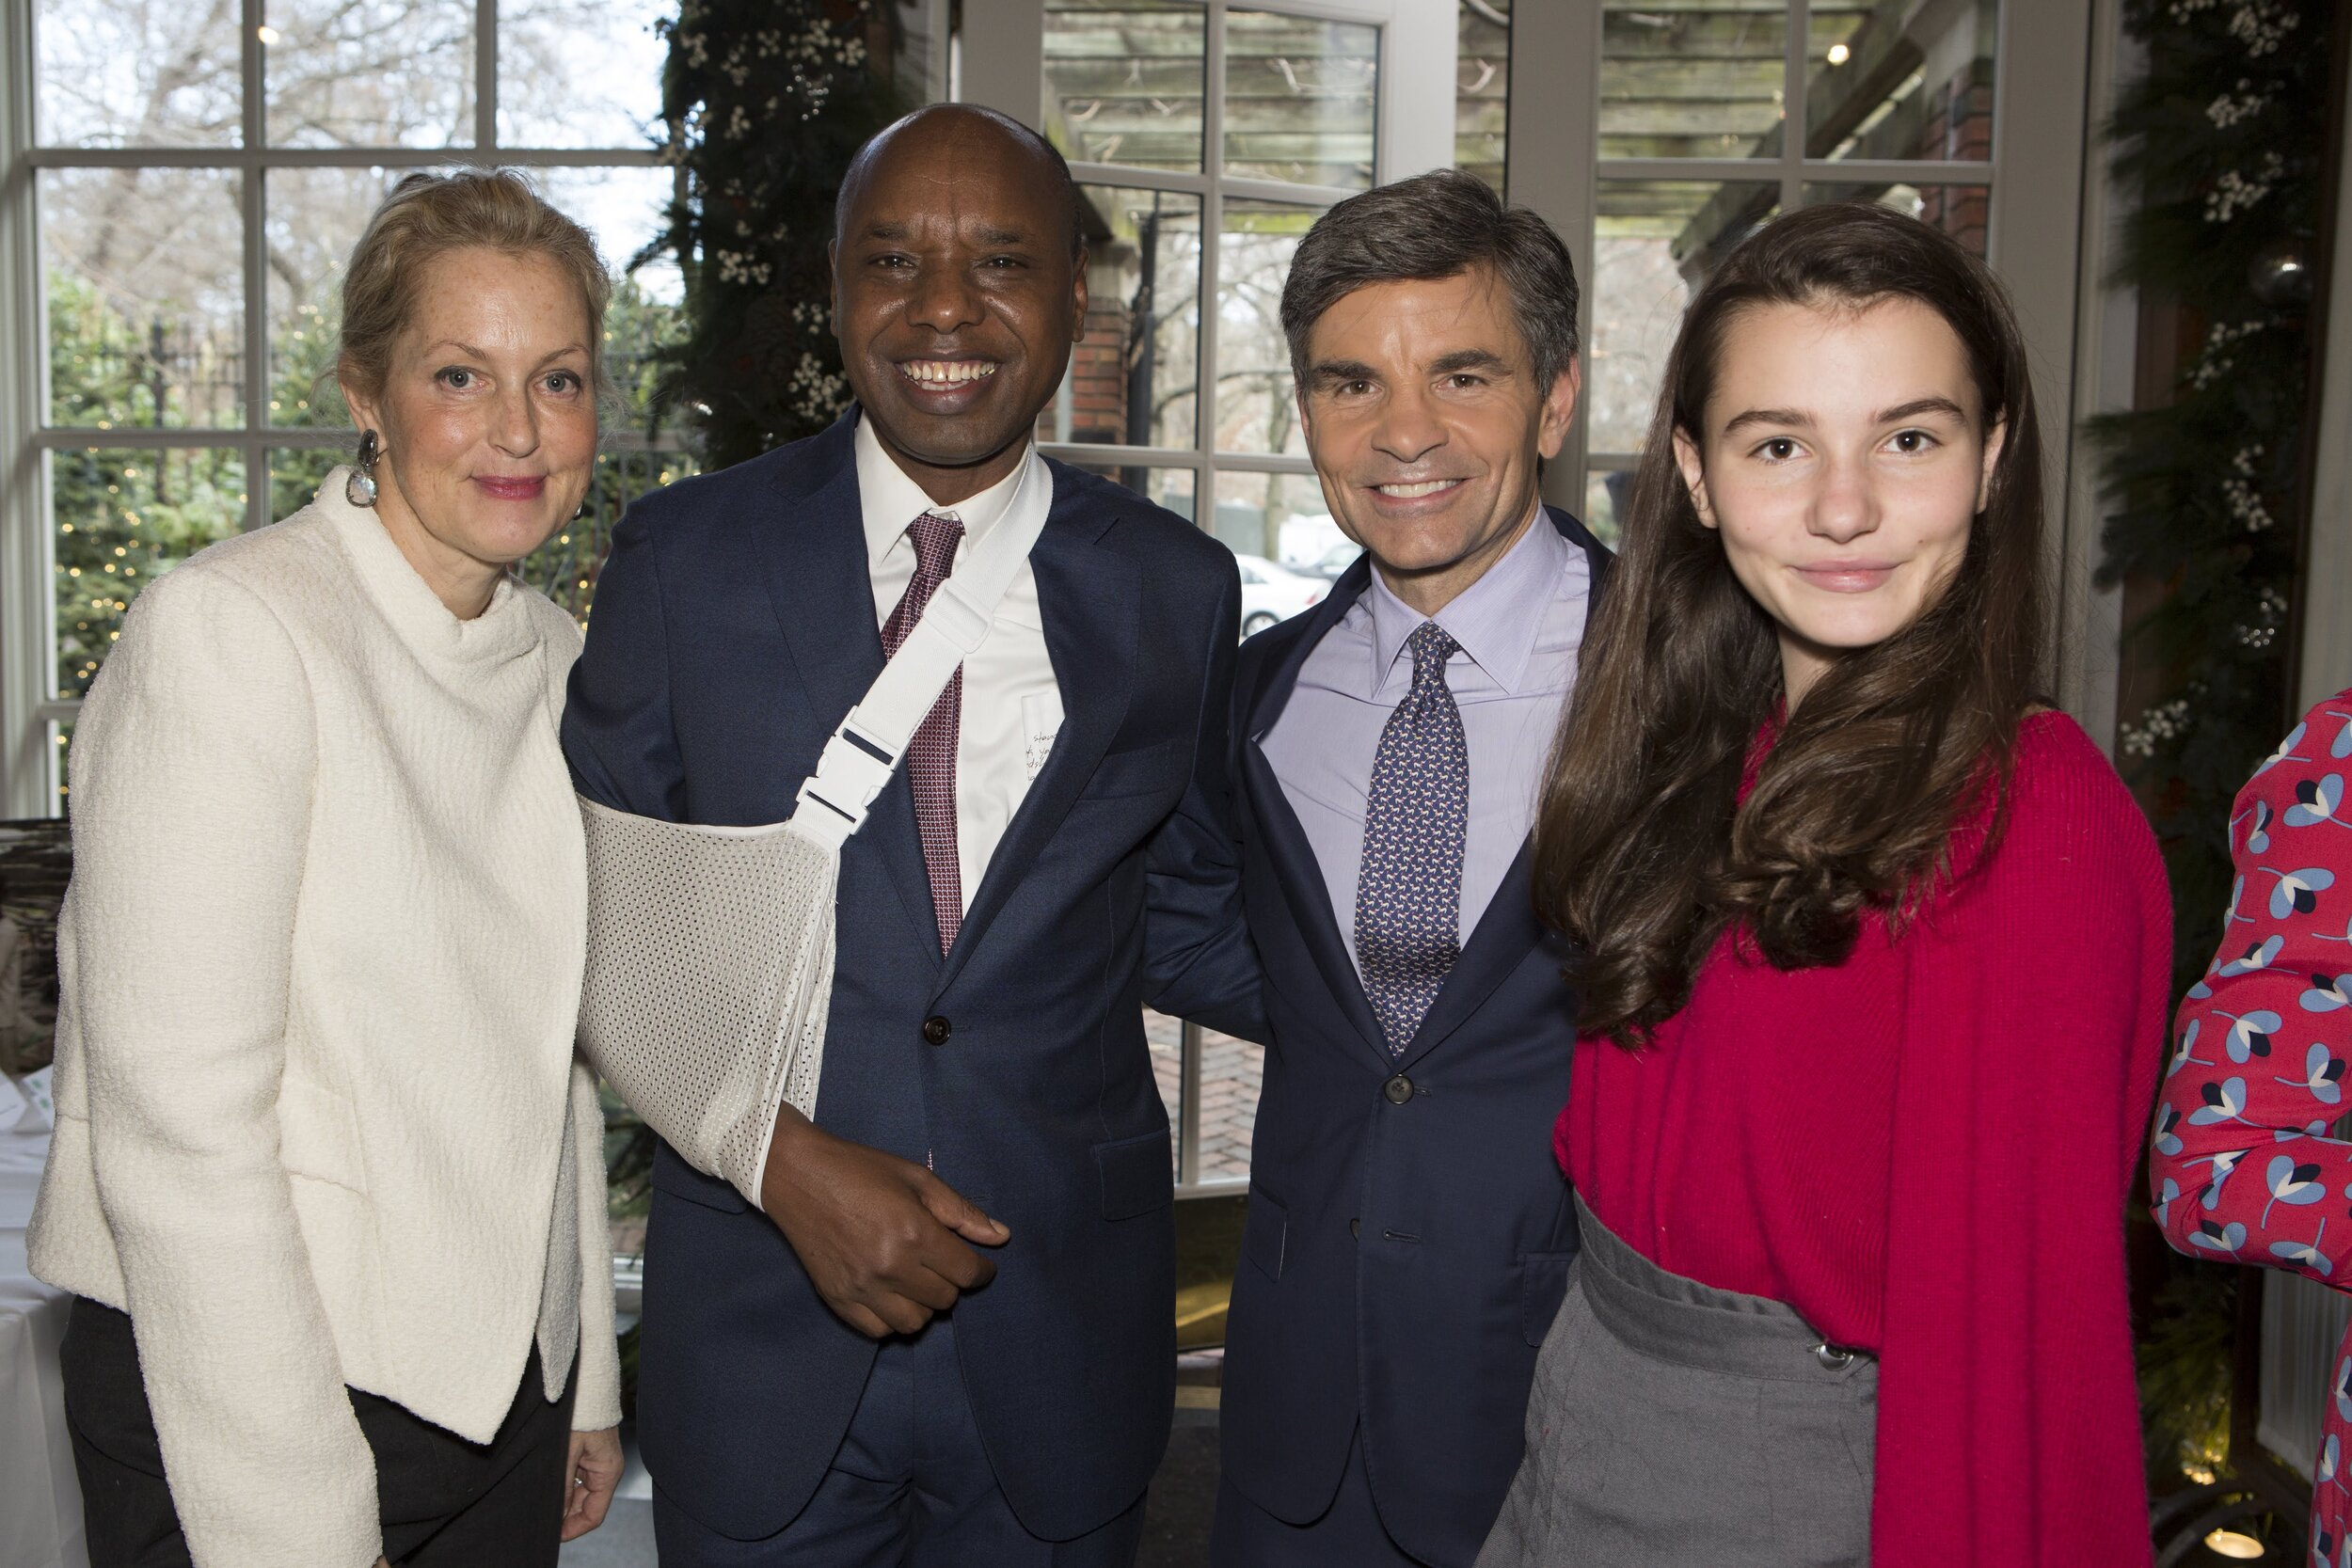 George Stephanopoulos And Ali Wentworth Nominate Vhw For The